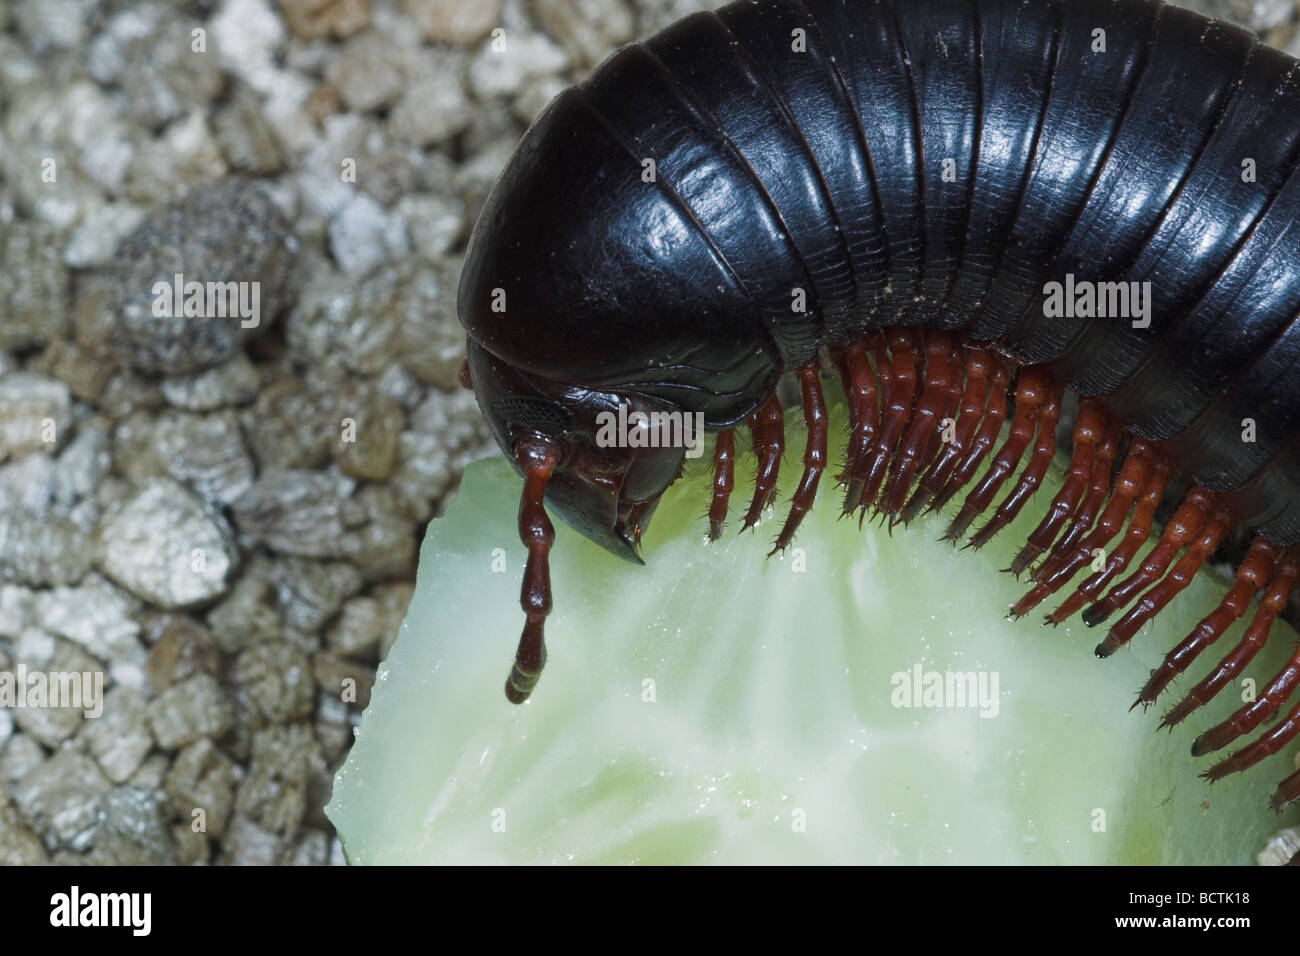 Pet Giant African millipede feeding on cucumber Stock Photo